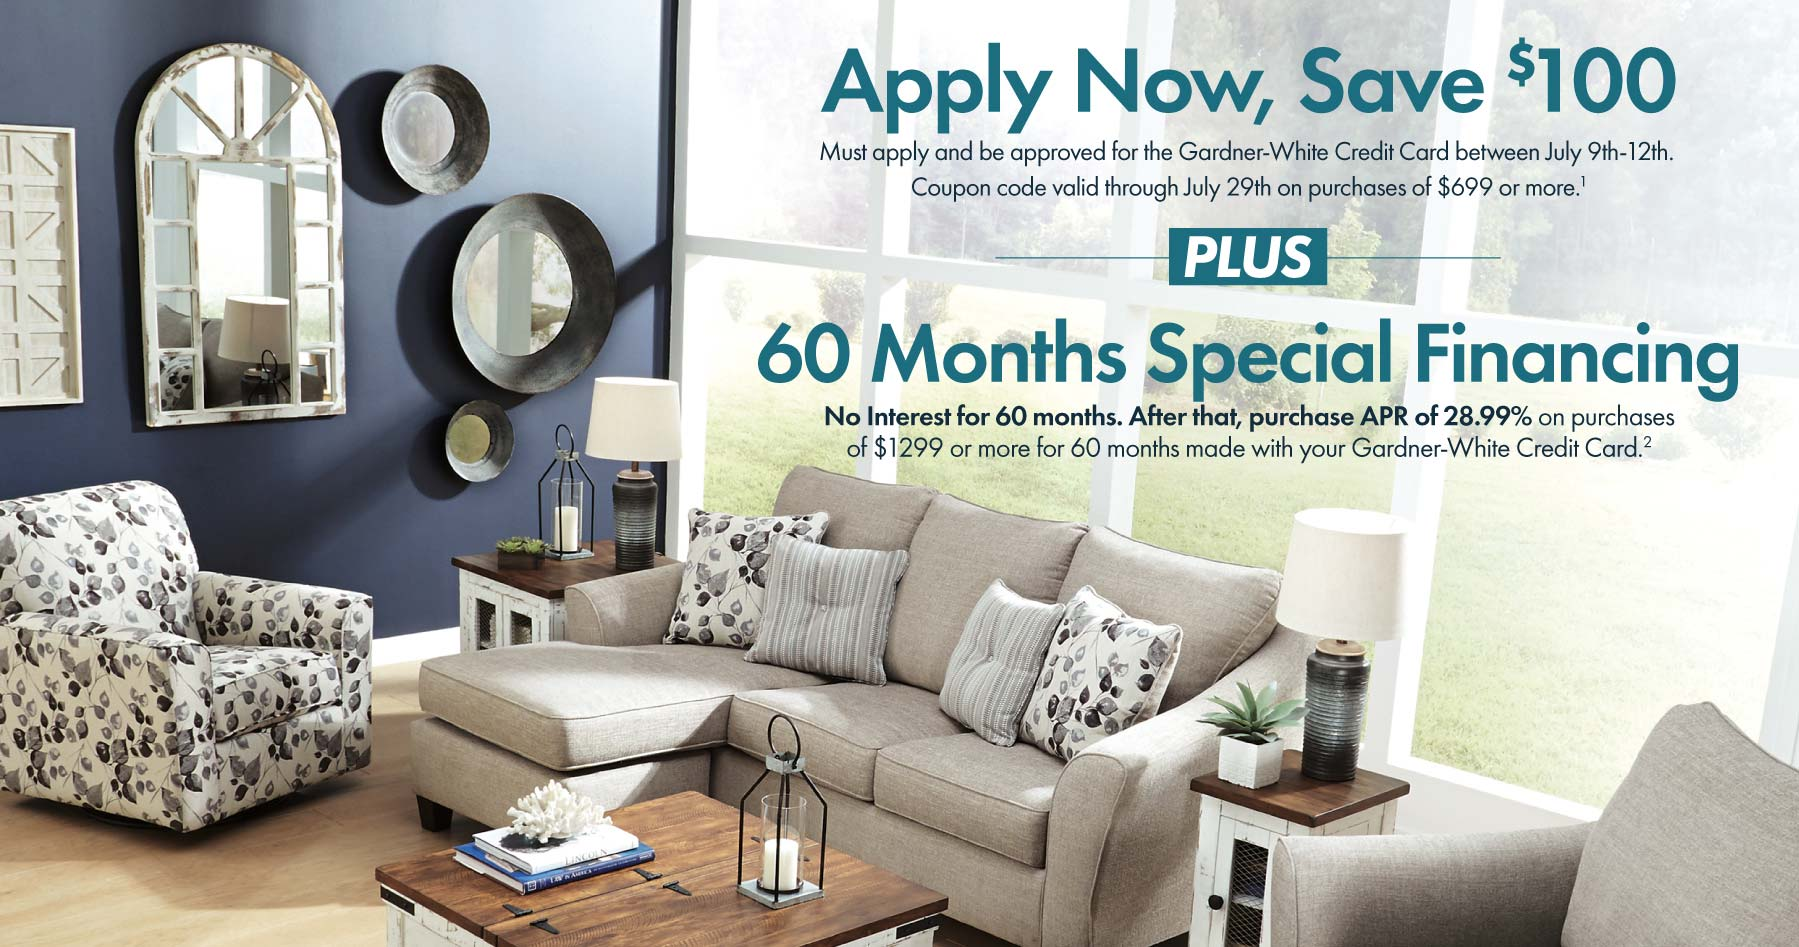 Must apply and be approved for the Gardner-White Credit Card between July 9th-12th.  Coupon code valid through July 29th on purchases of $699 or more. Details below.